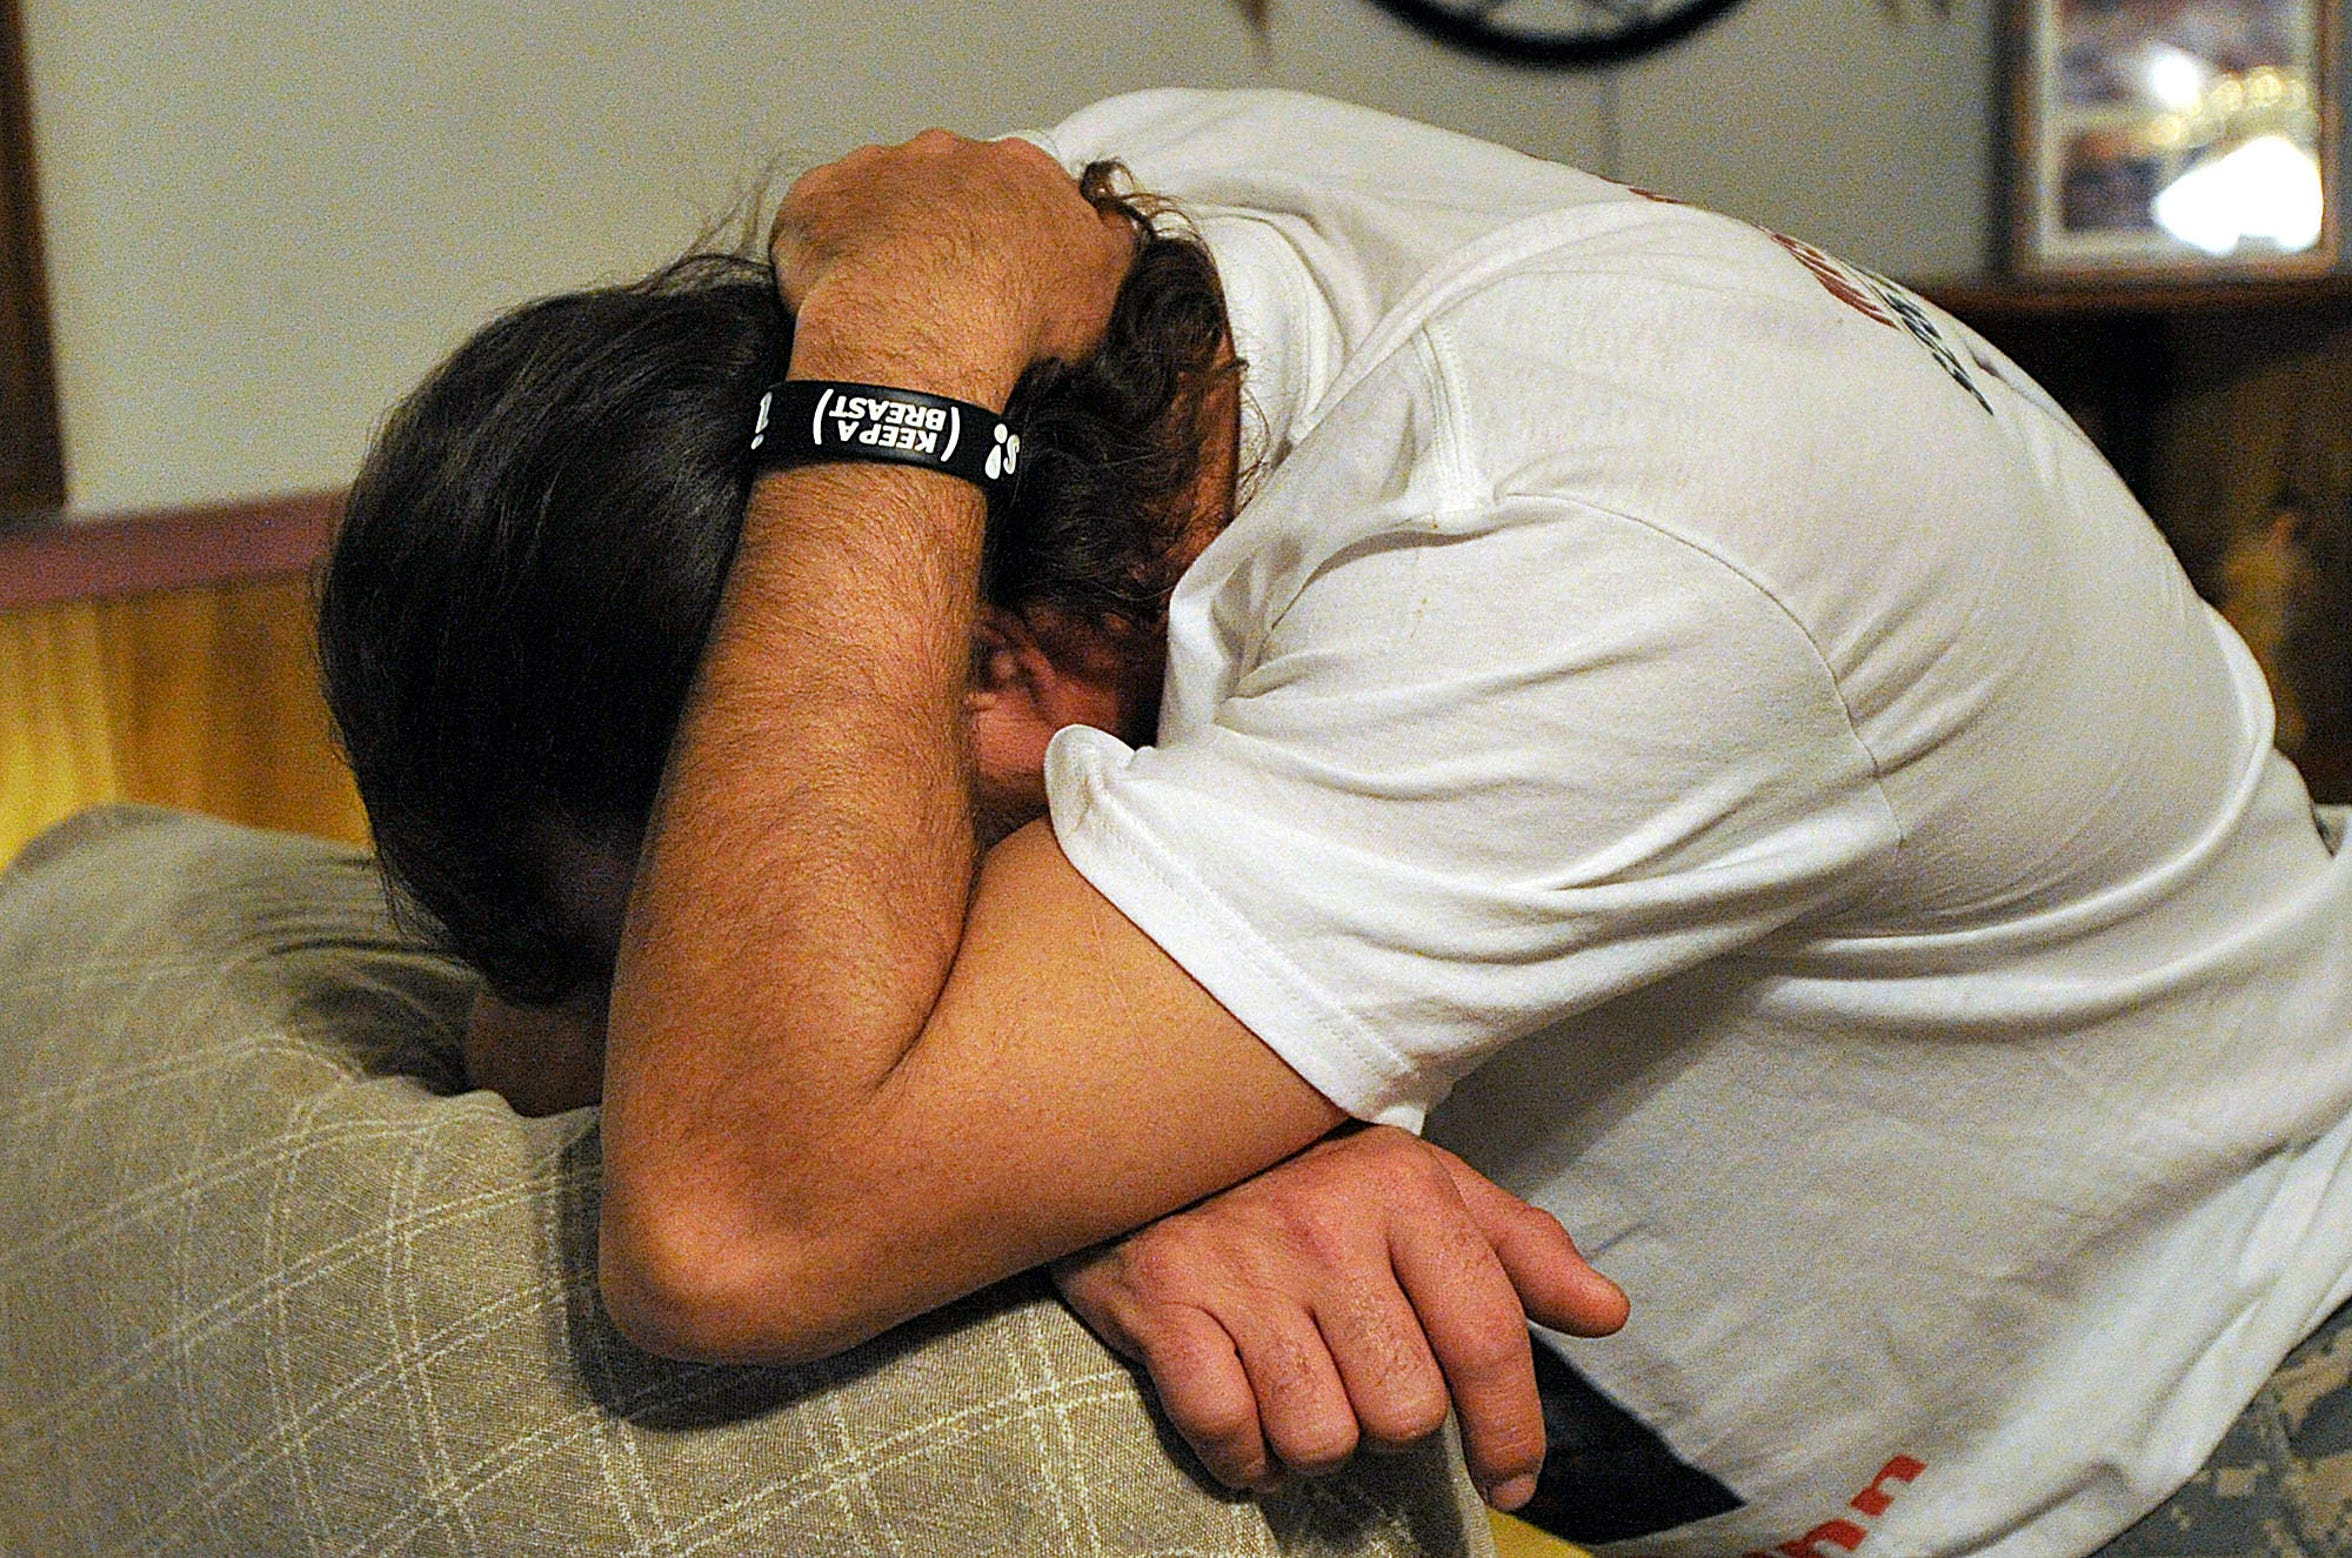 Clint Dunn, the father of missing Colorado City teen Hailey Dunn, buries his face in his arms after hearing news about information pertaining to the case of his missing daughter contained in affidavits obtained from Mitchell County Judge Ray Mayo on Jan. 11, 2011.